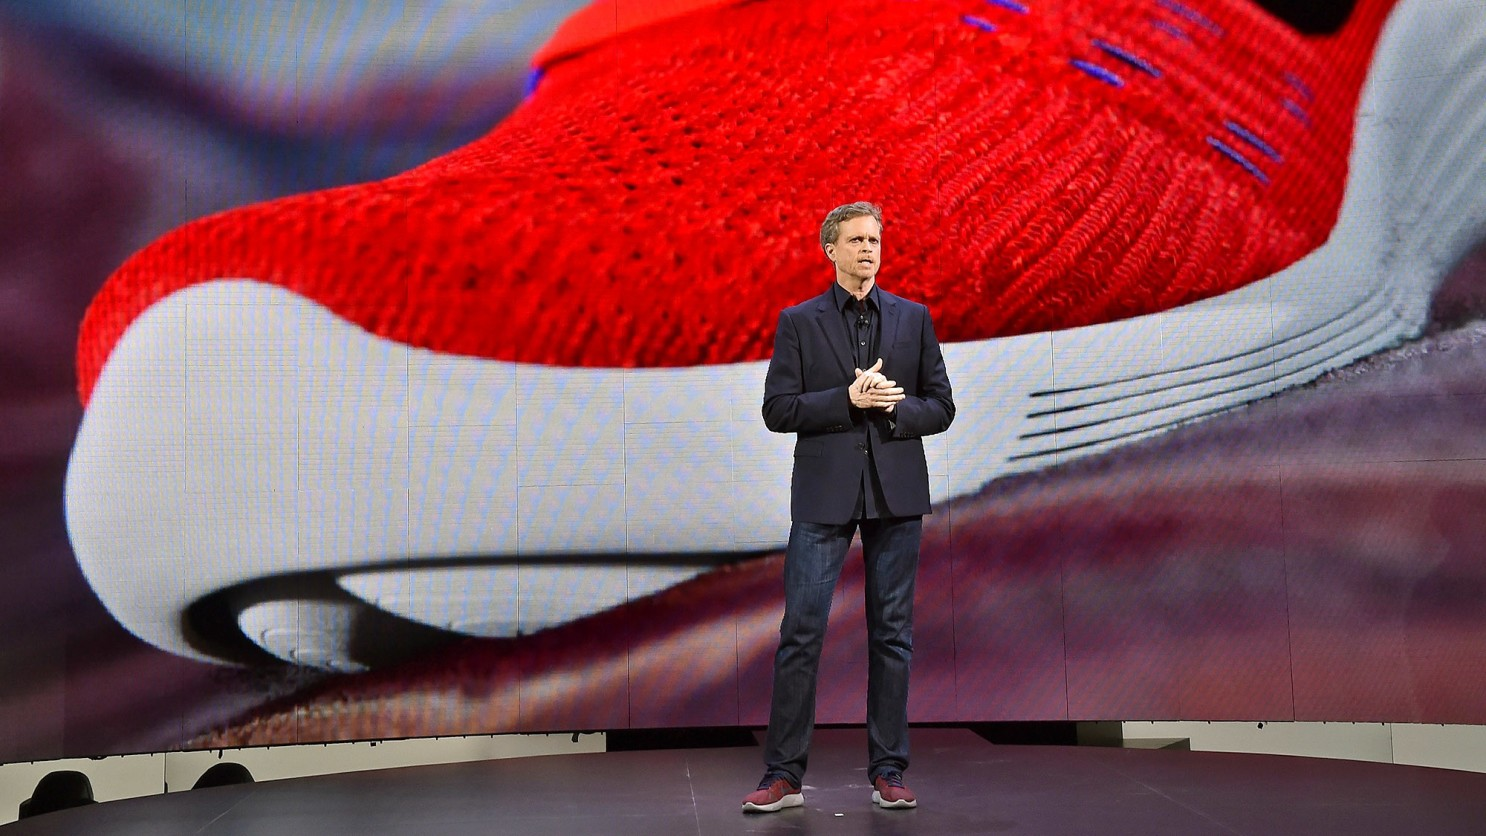 , Nike 'CEO' Mark Parker to Resign soon